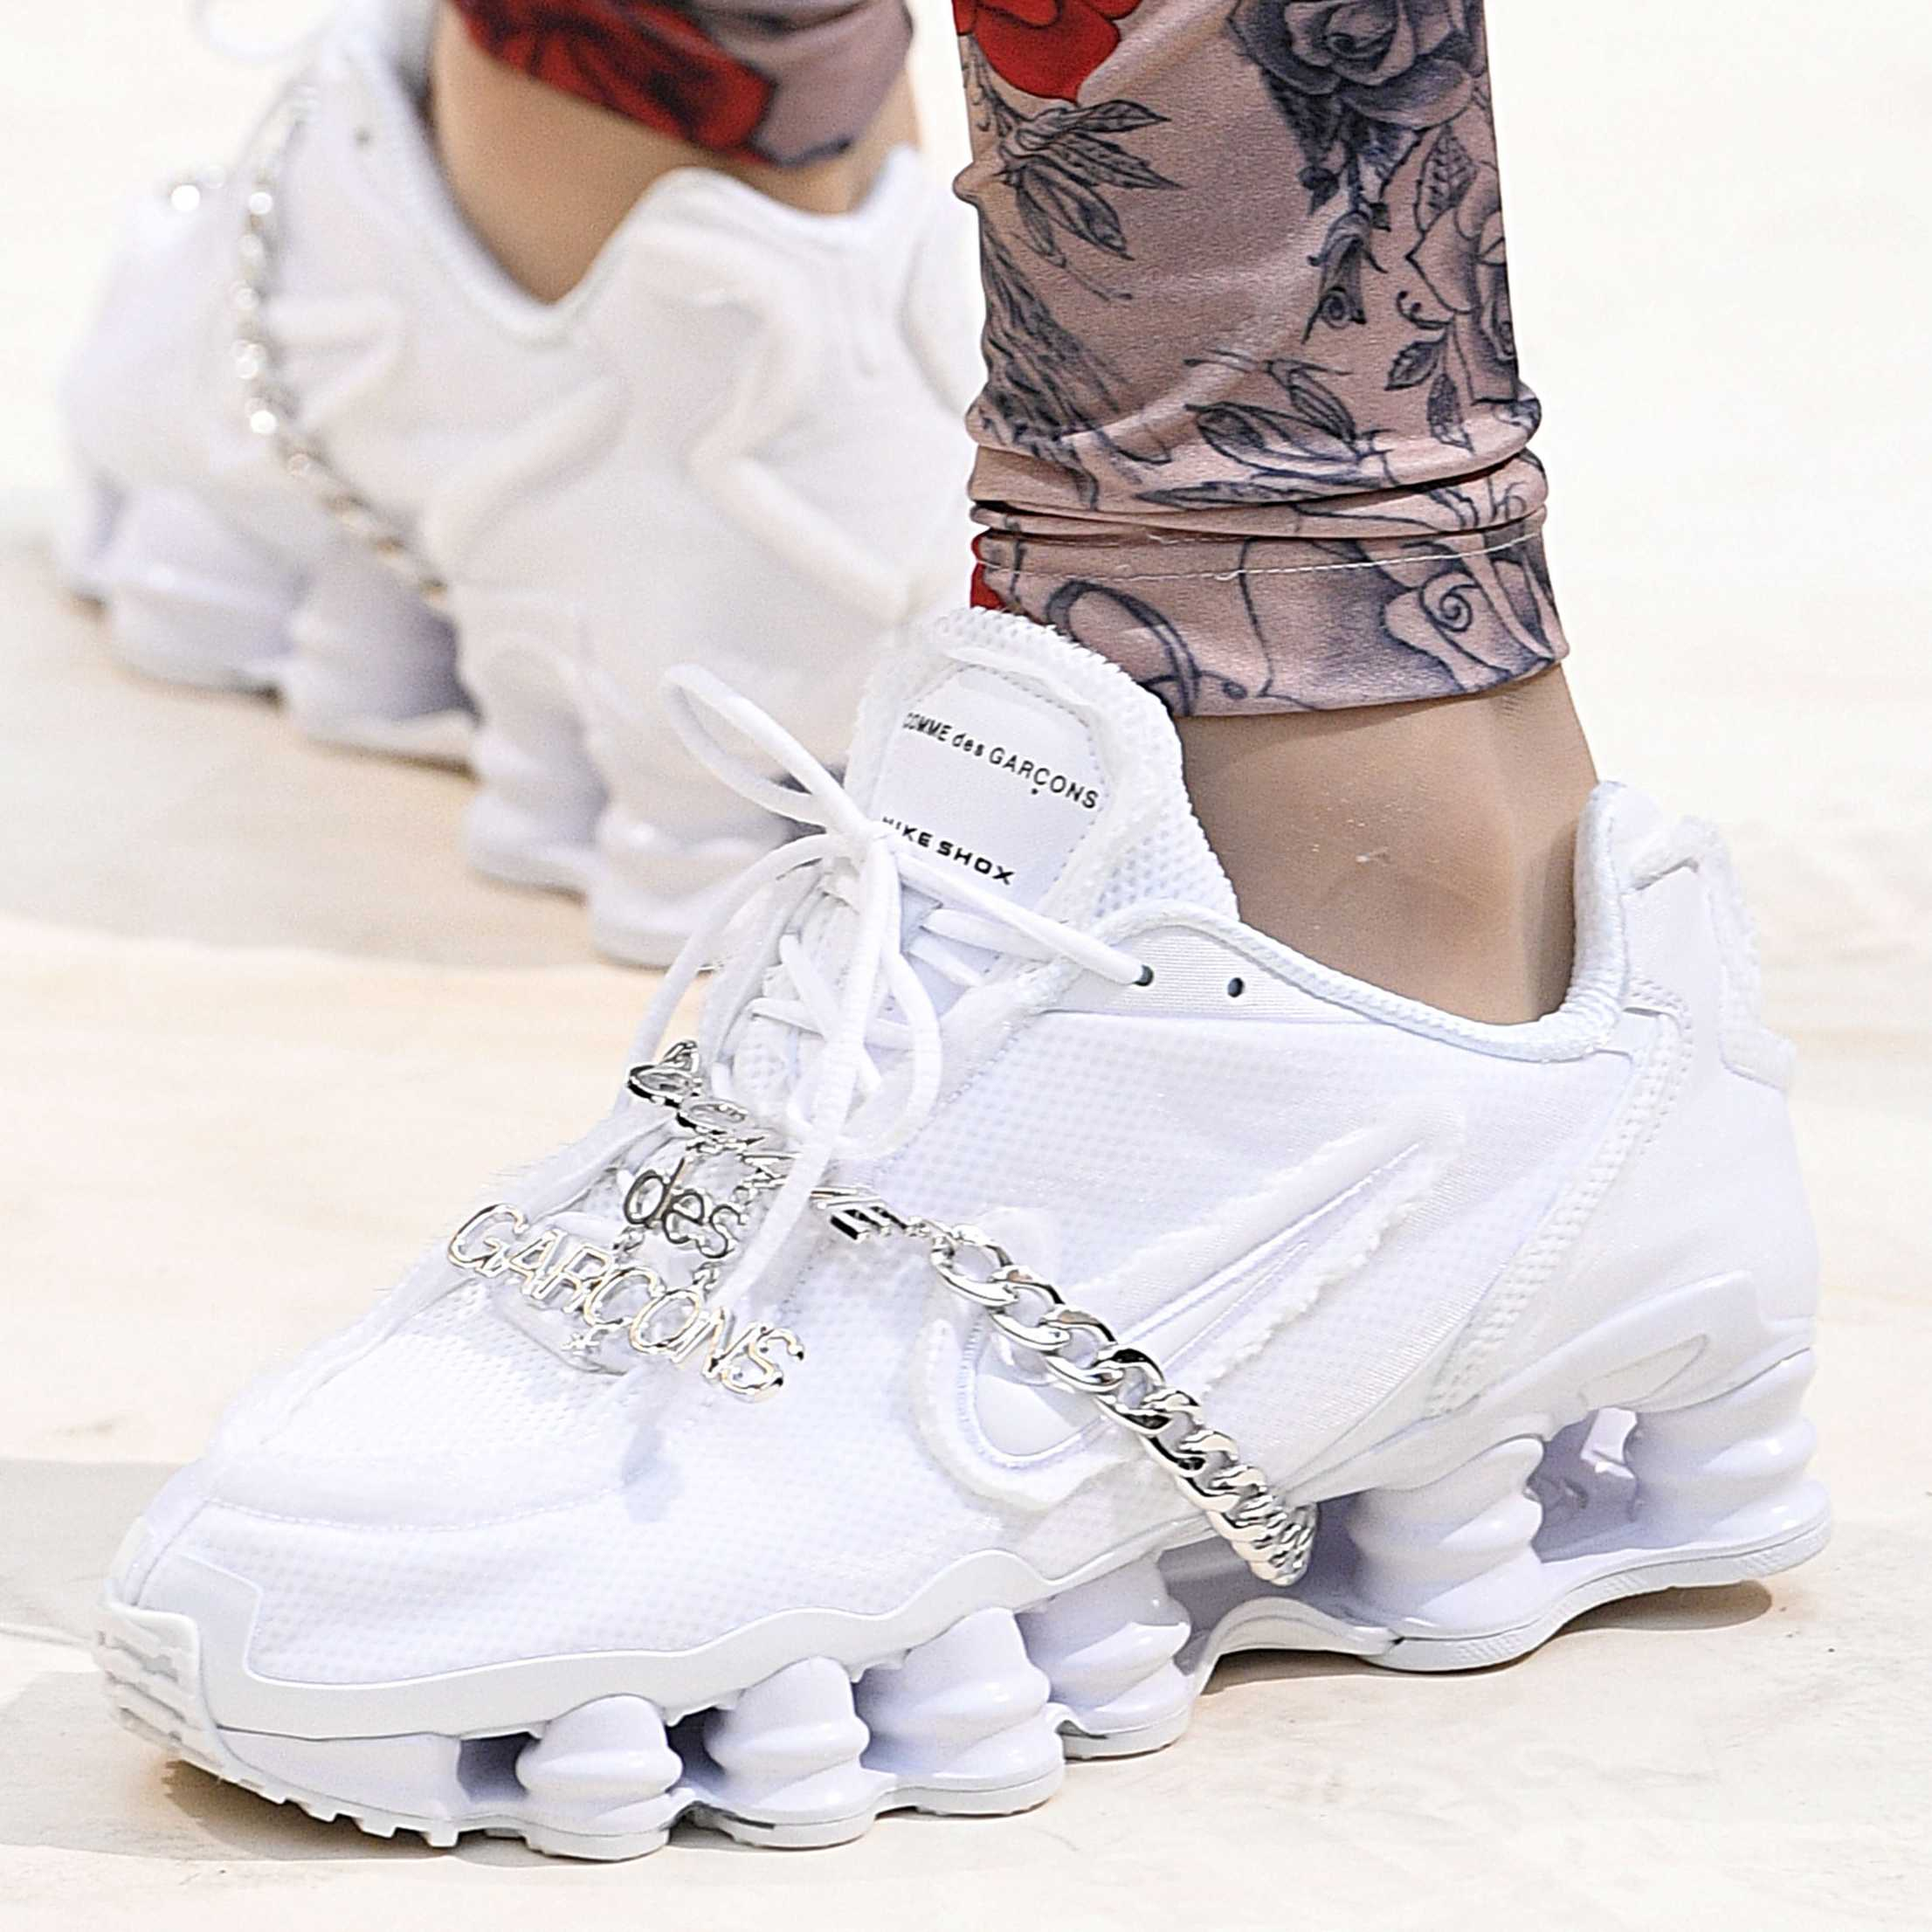 Comme des Garcons Give the Nike Shox Some Drip